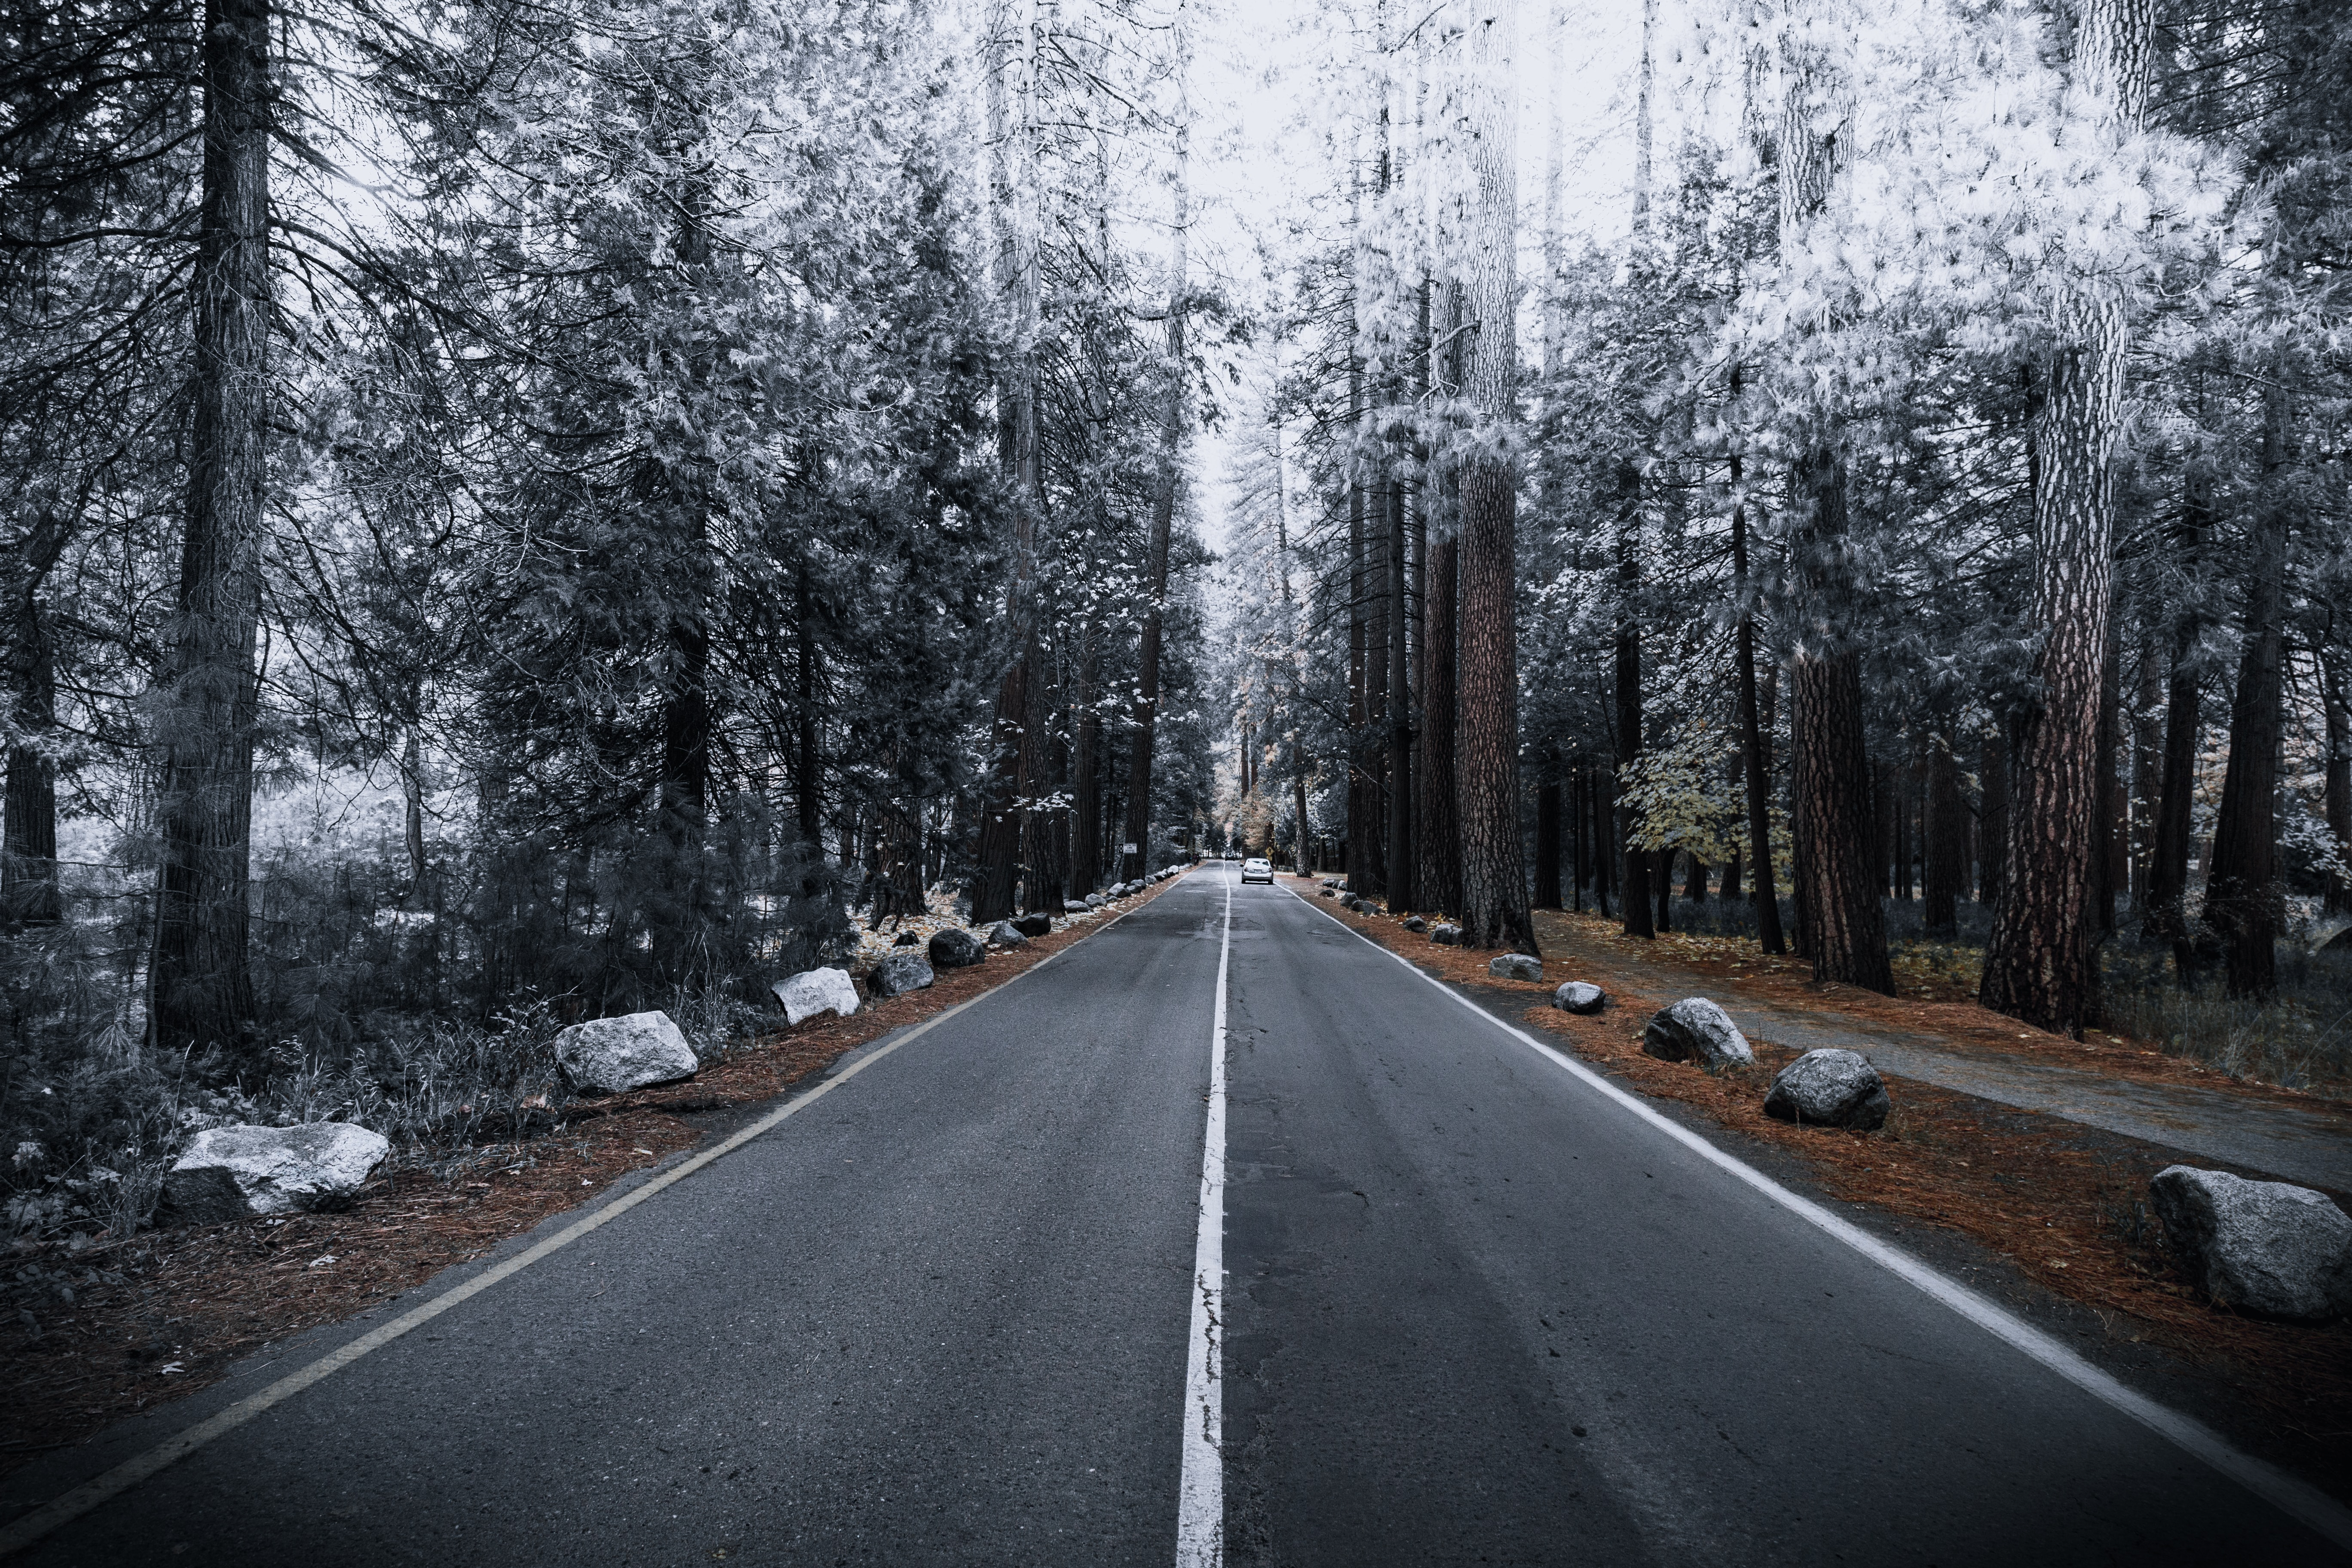 concrete road between forest